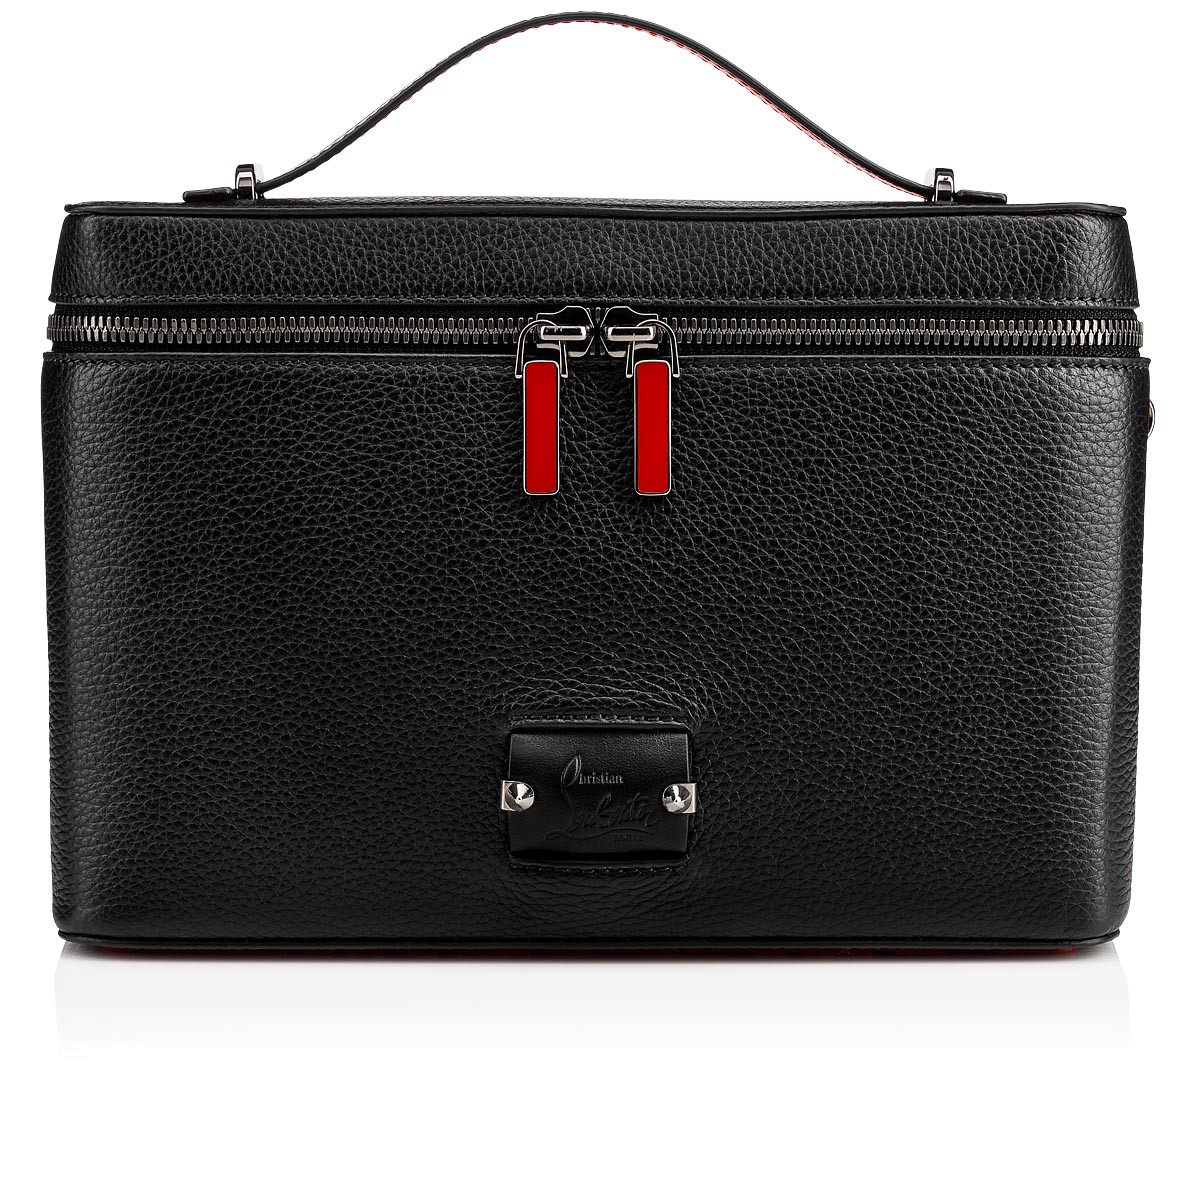 Bags - Kypipouch Vanity-pouch - Christian Louboutin